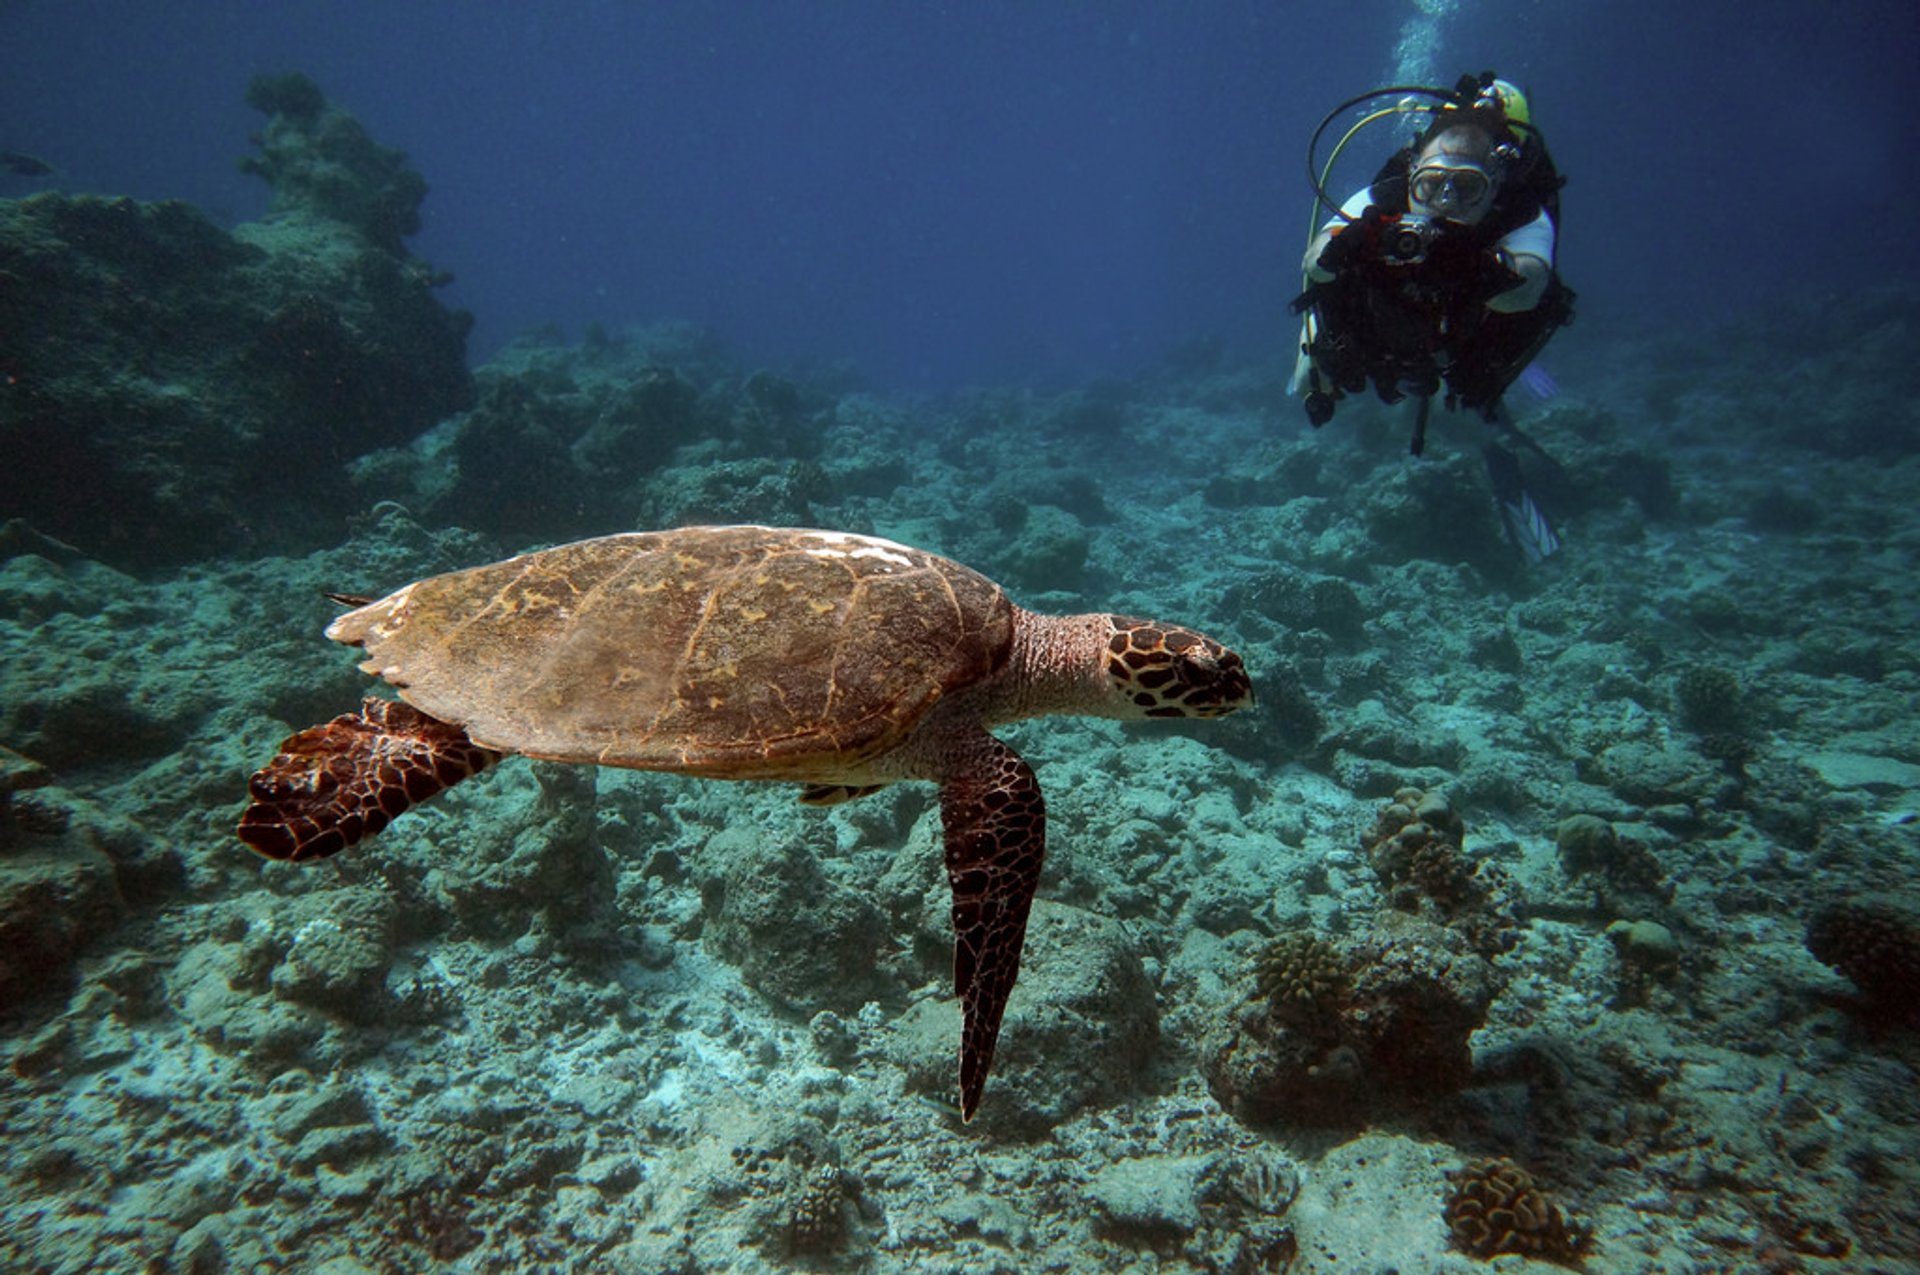 Diving Maldives: Hawksbill Turtle, Bandos Island, Maldives 2020